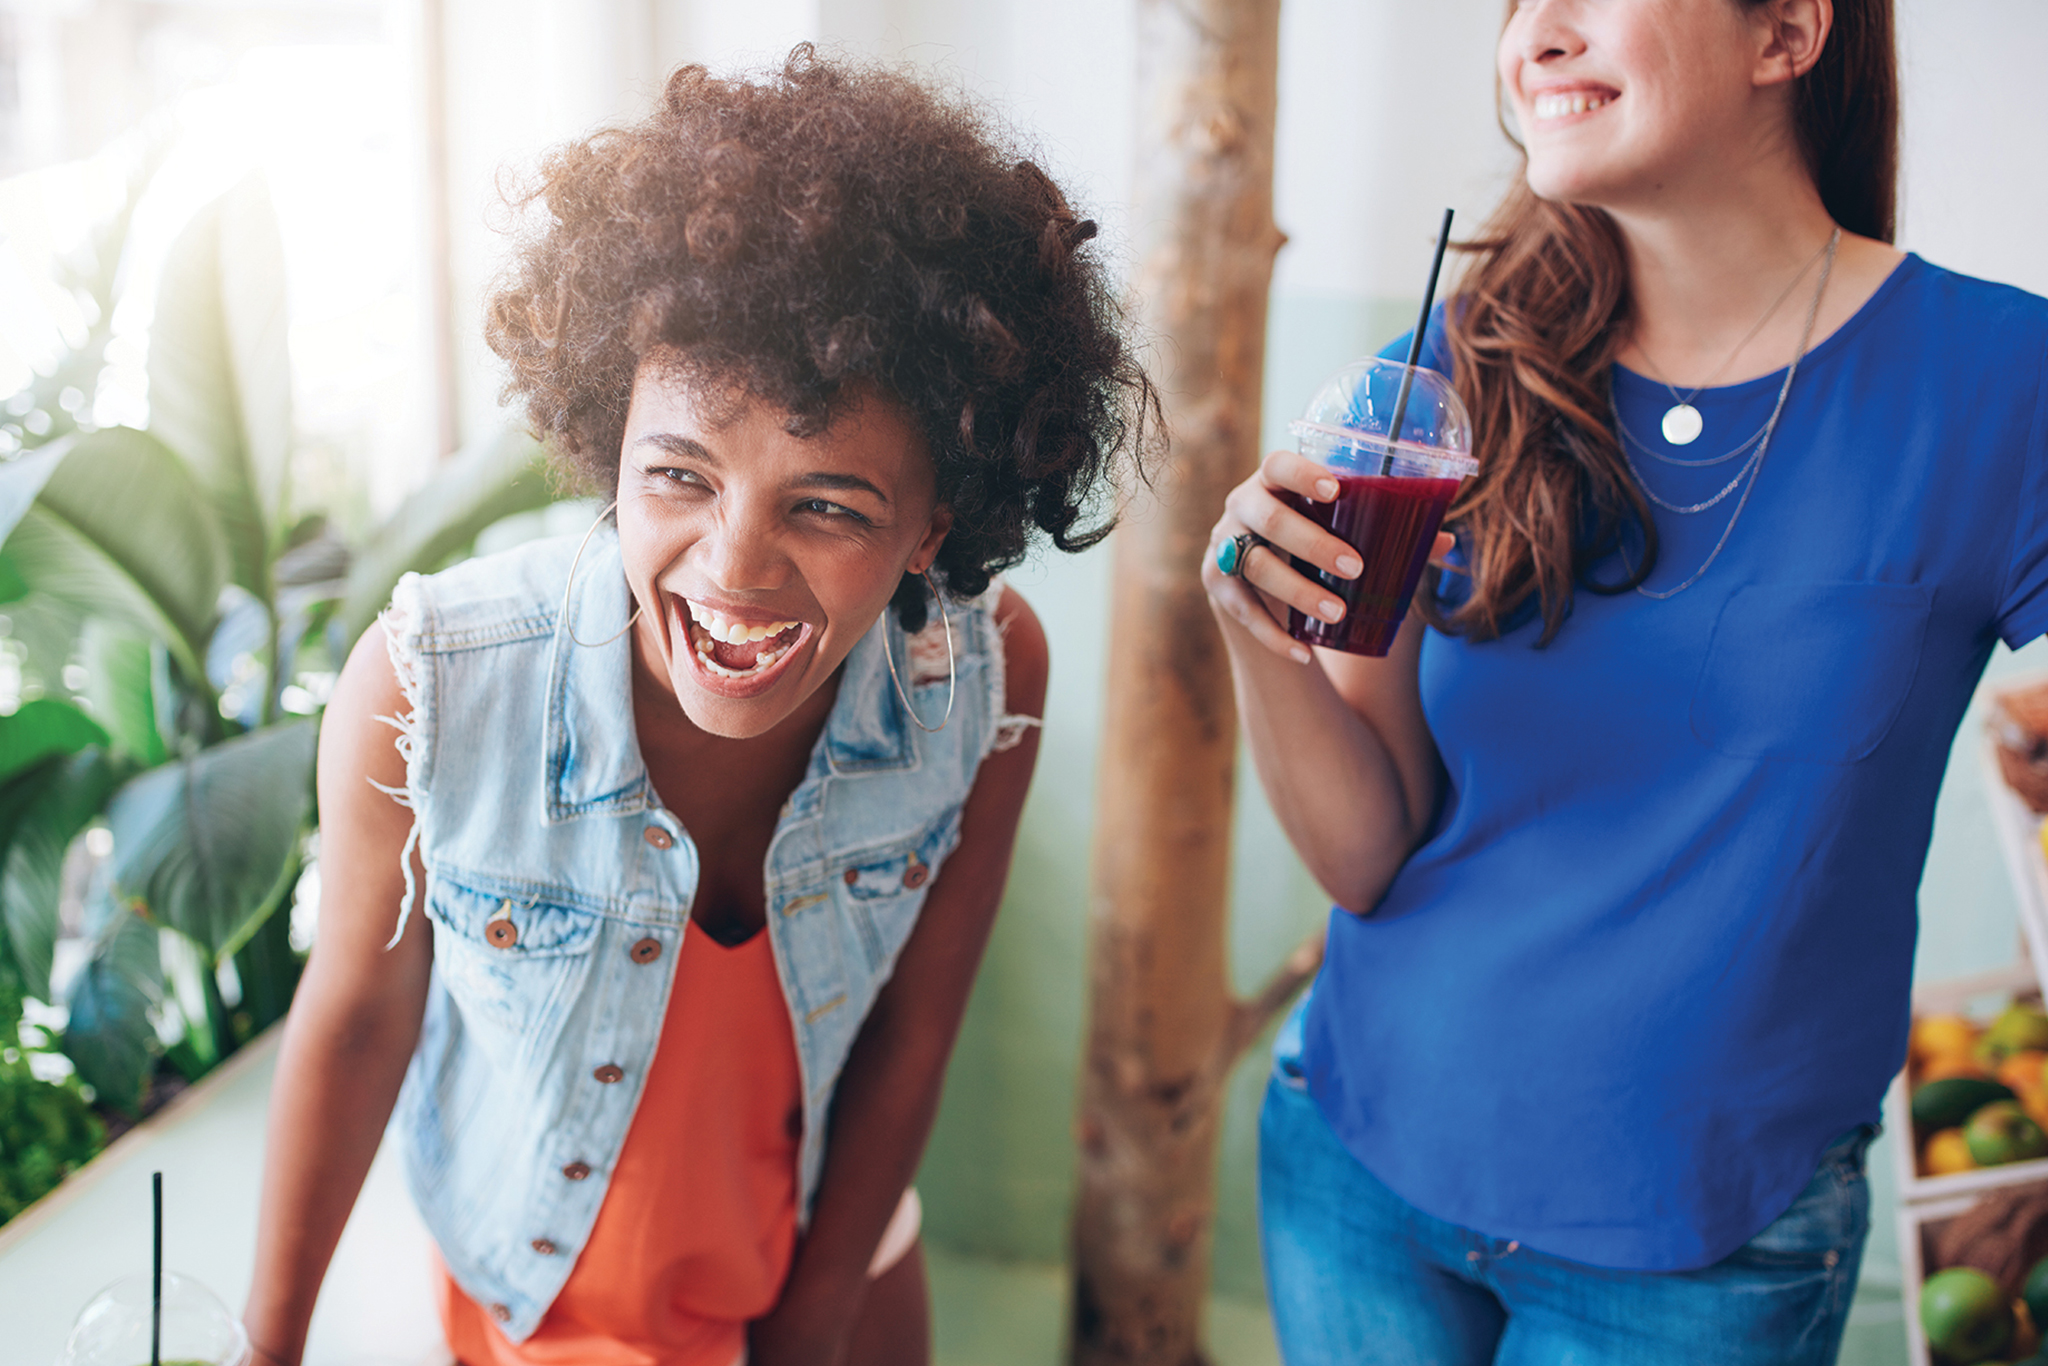 Two women laugh while drinking cold pressed juice